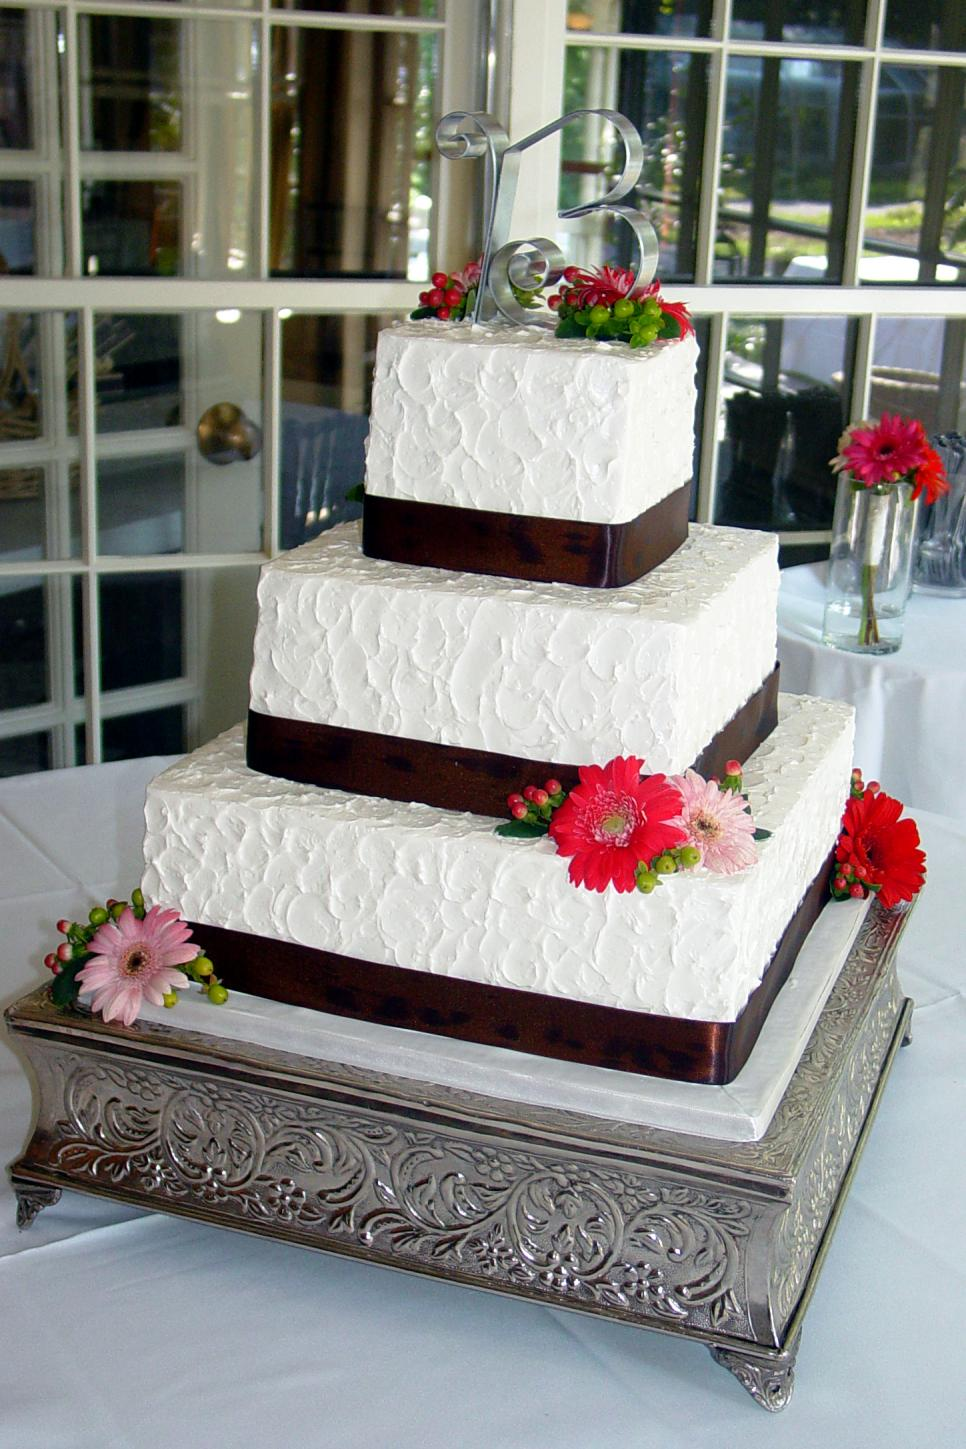 Stupendous The Best Wedding Cake Bakeries In All 50 States Giveaways Tlc Com Personalised Birthday Cards Cominlily Jamesorg